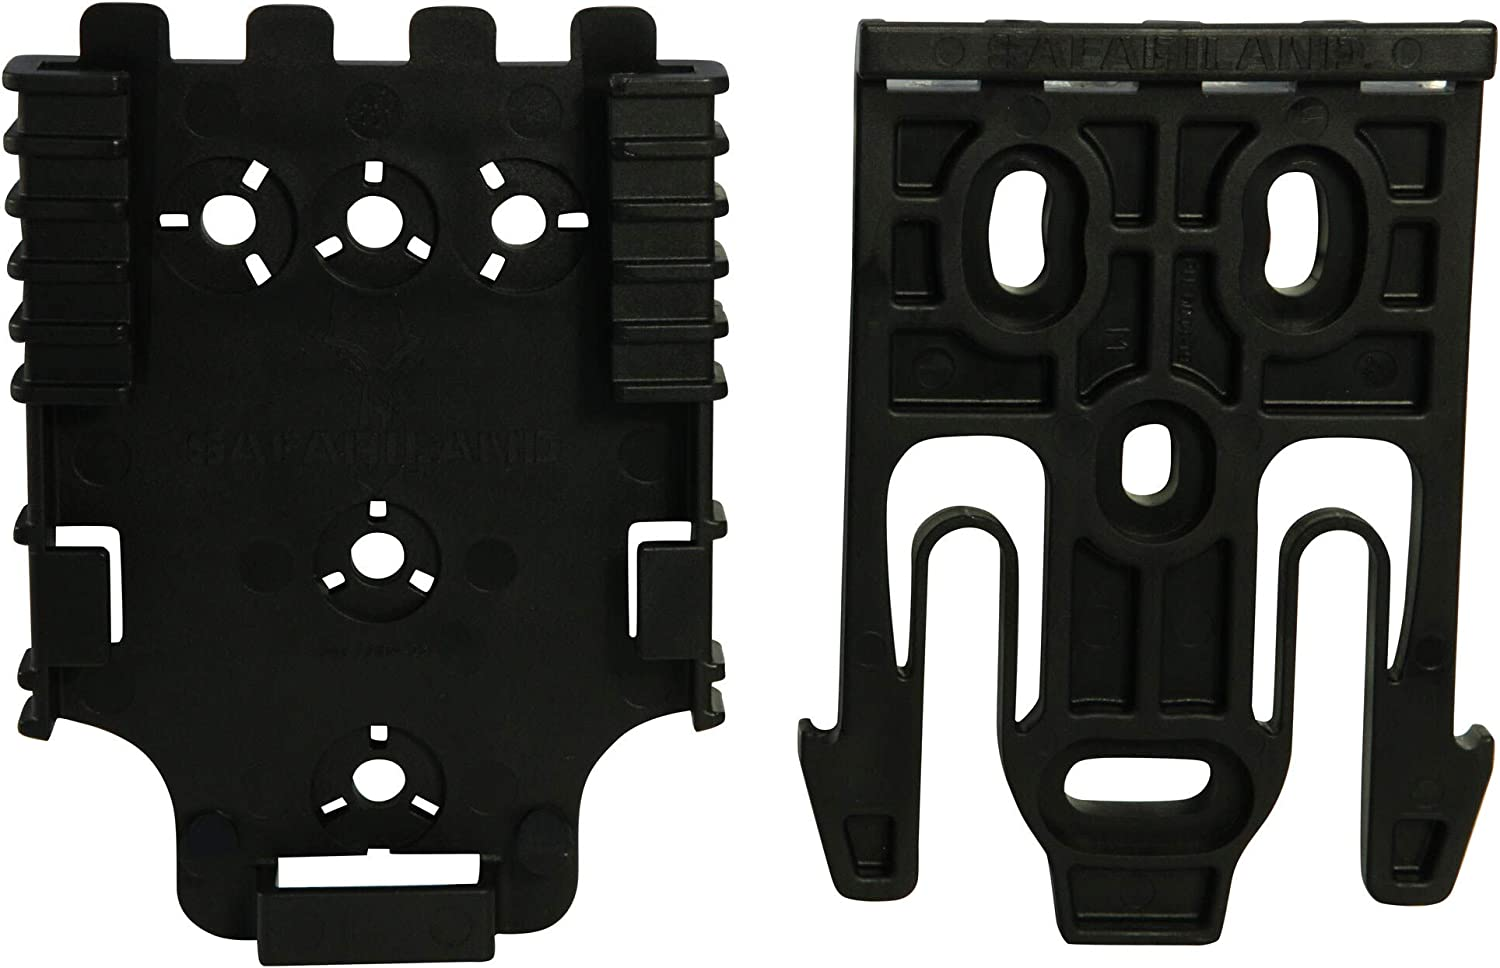 Safariland QLS Quick-Kit 1-2 Quick Release system 1 fork and 1 receiver